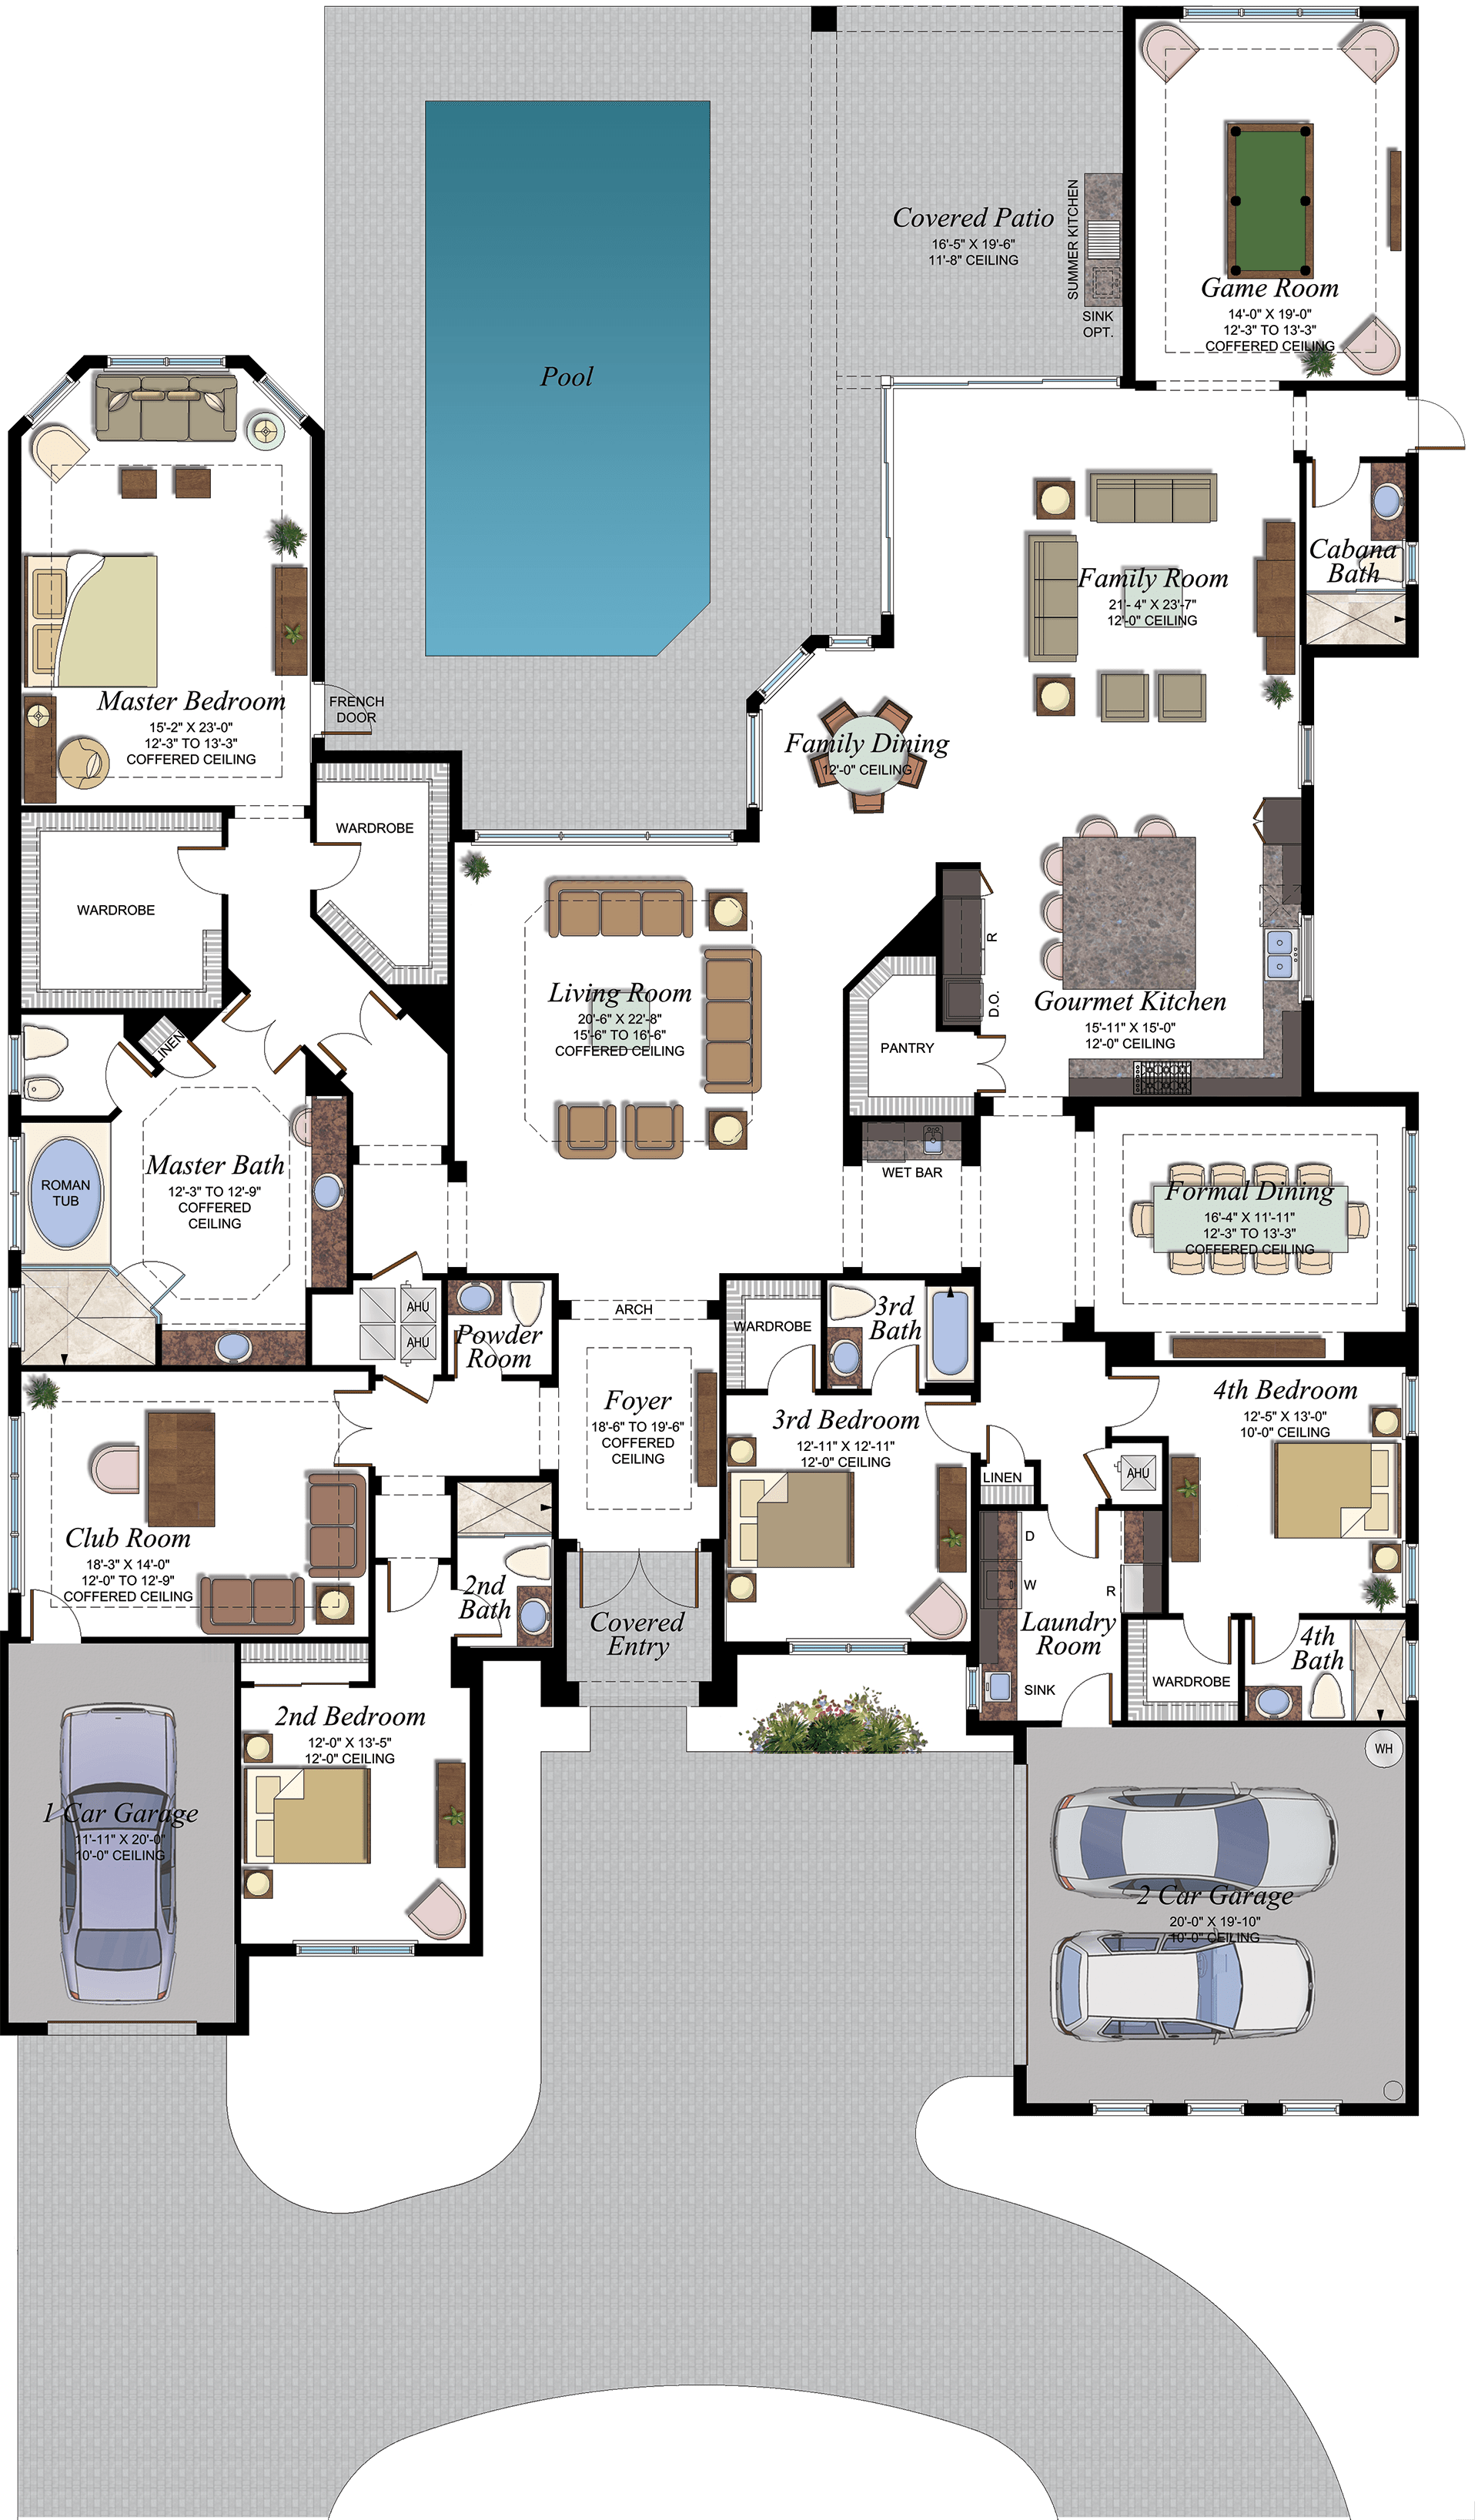 Belvedere Floorplan Home Design Floor Plans House Layout Plans My House Plans